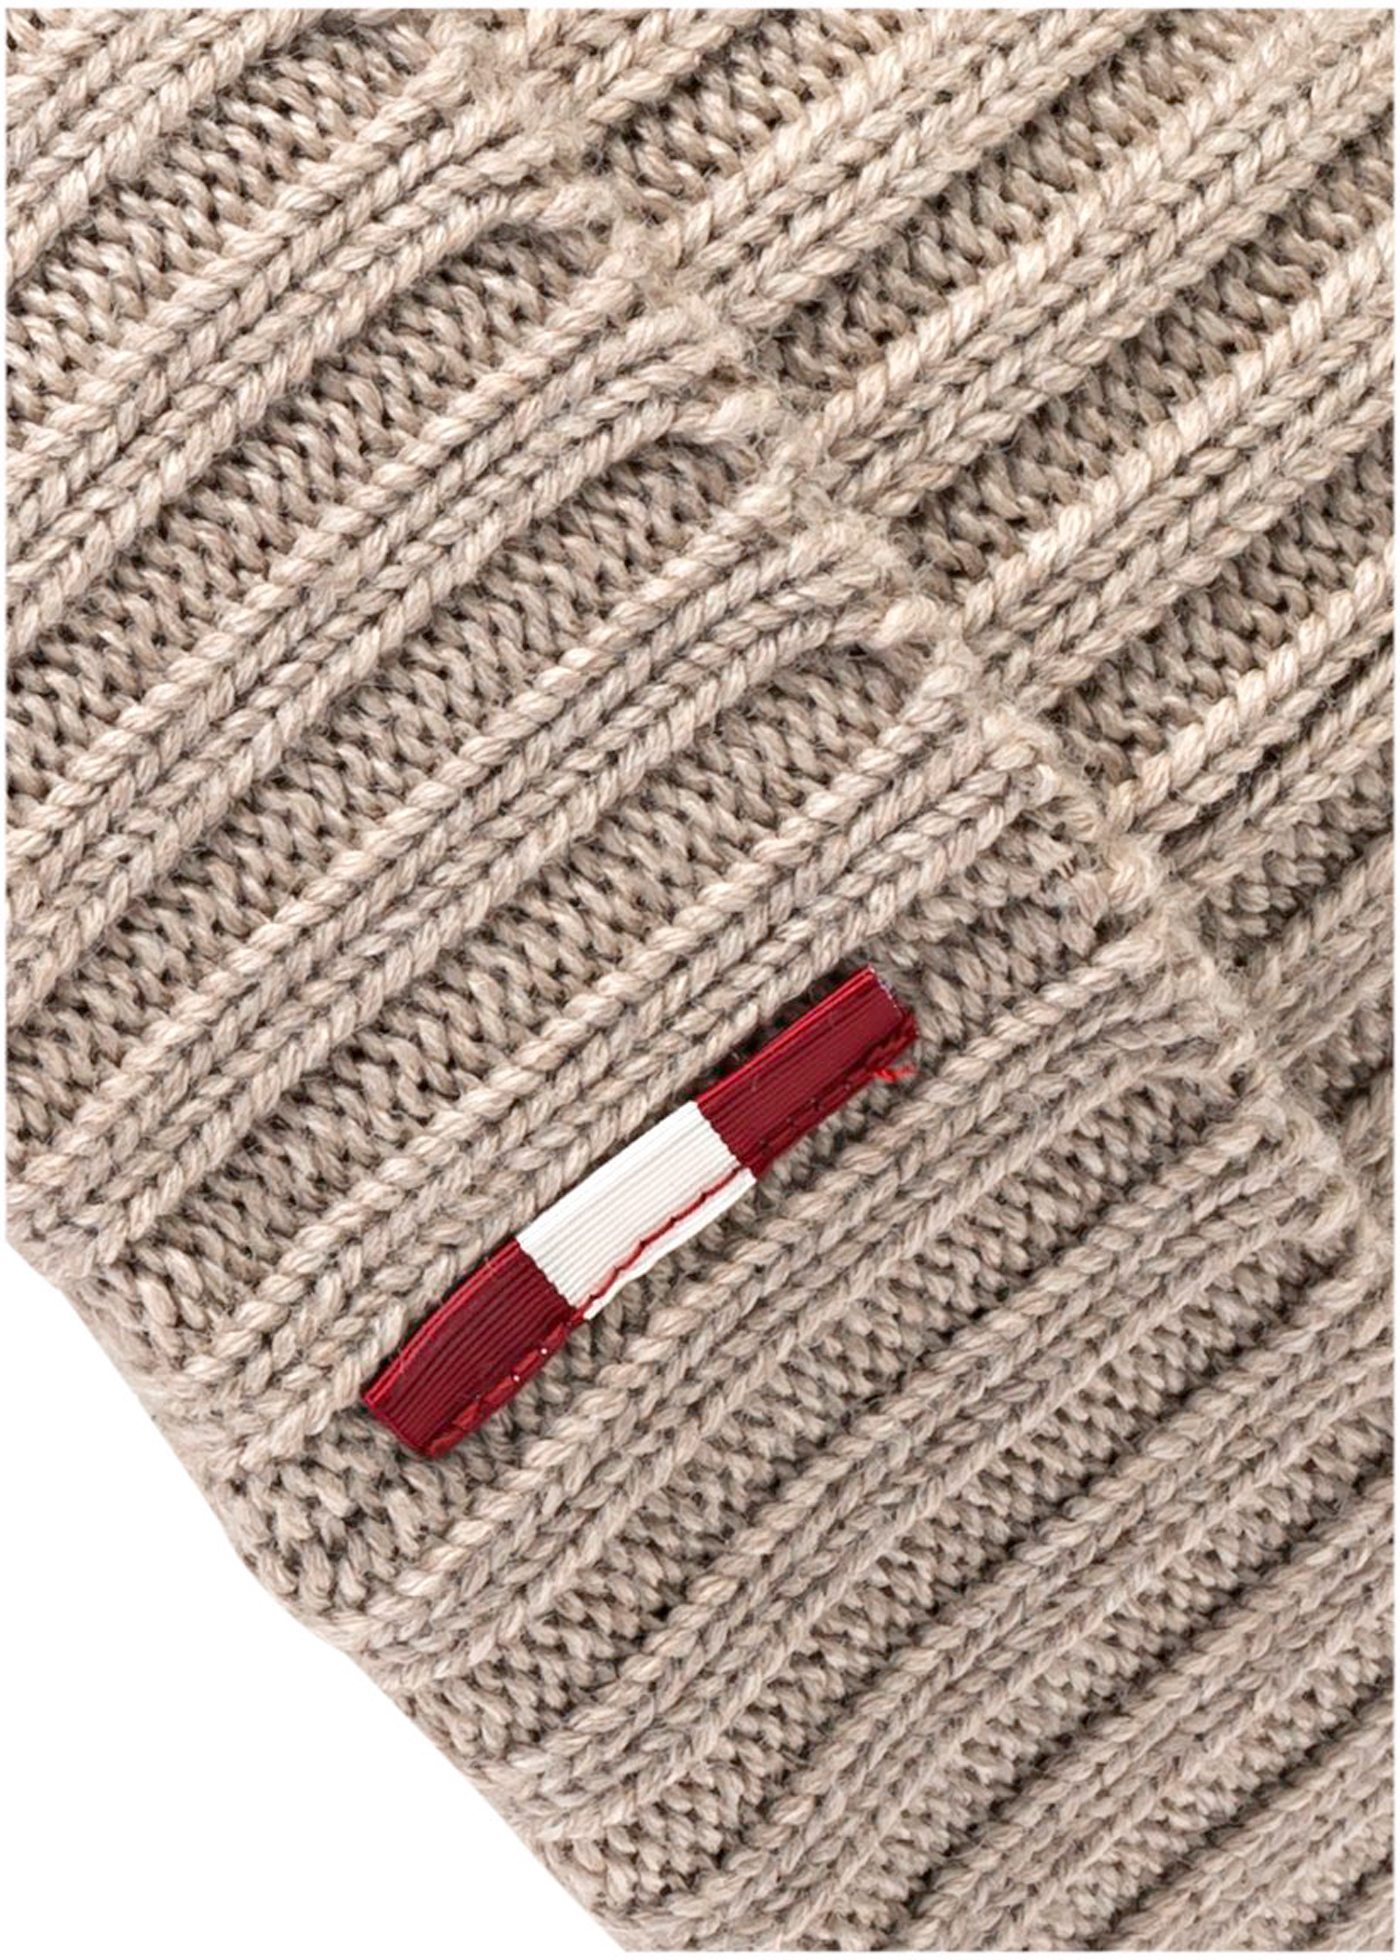 M8AN147K-8S506/130 BEANIE image number 1